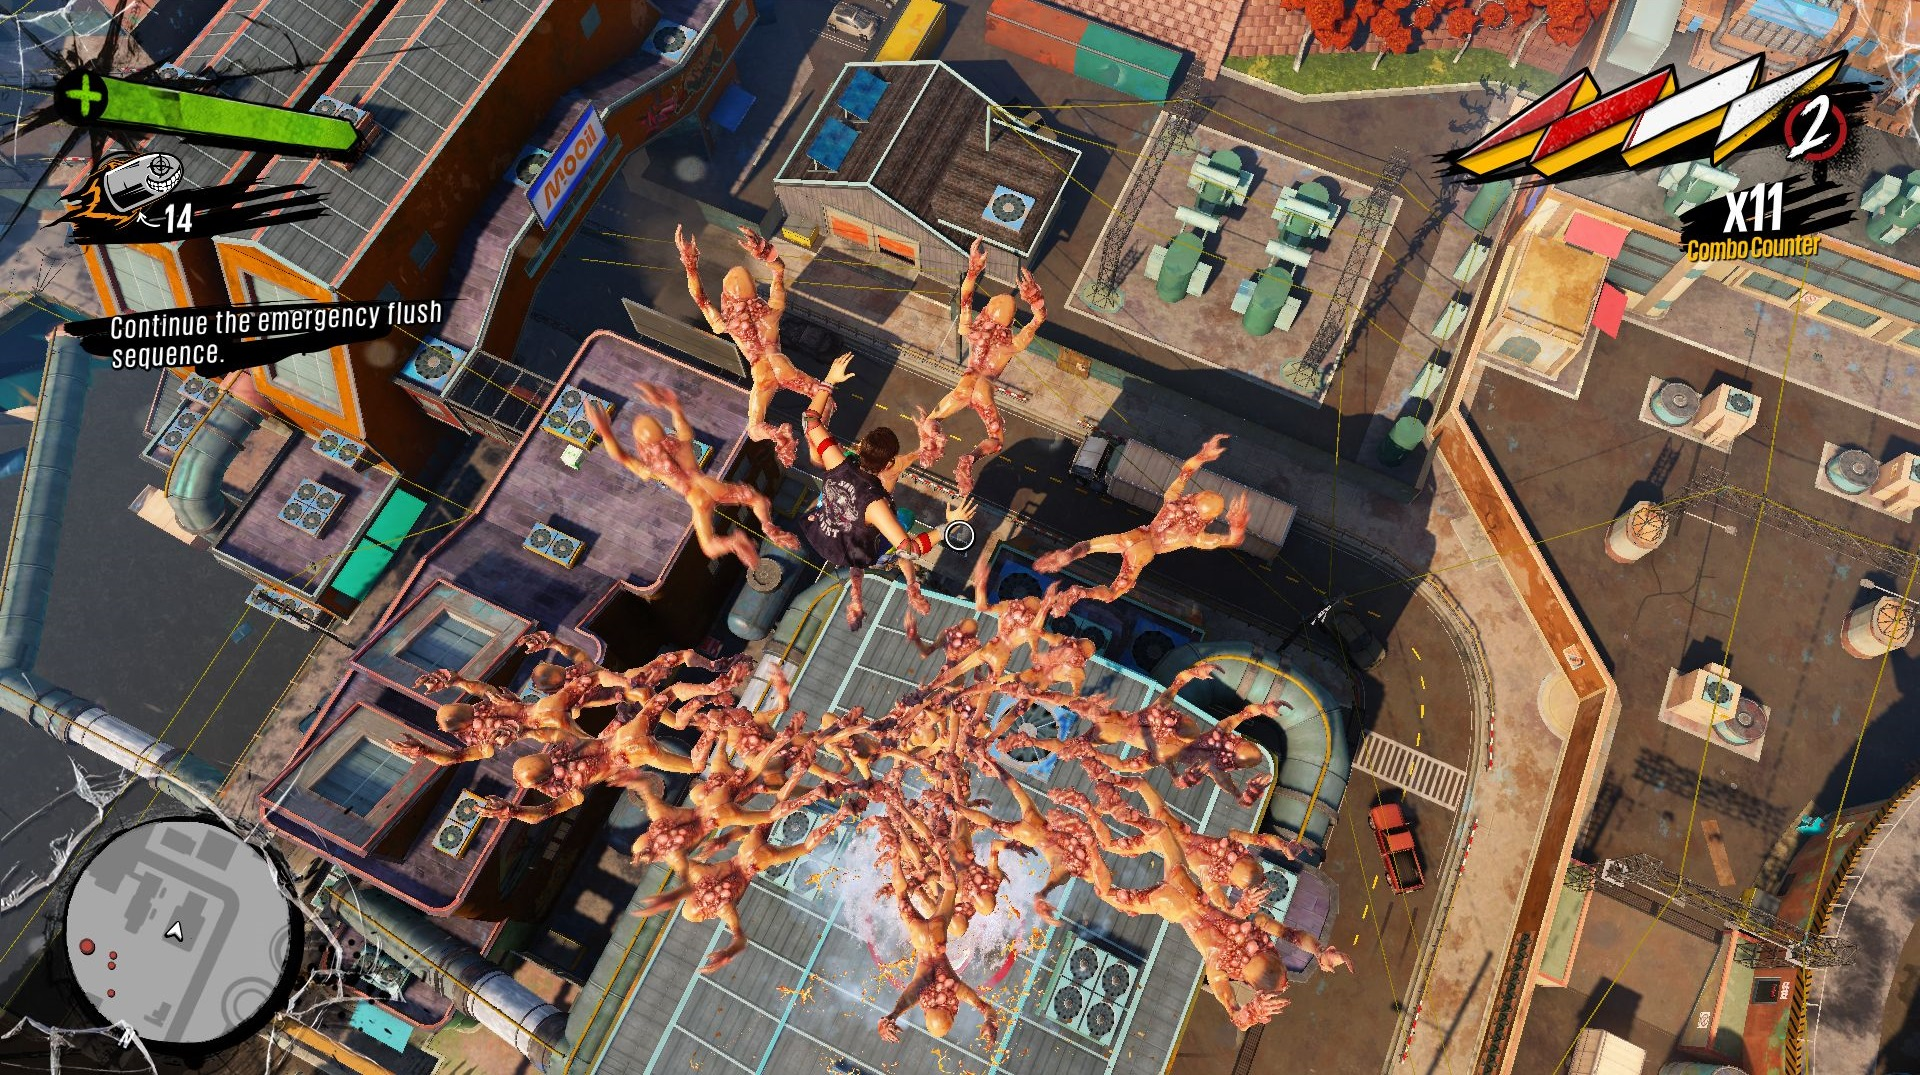 So, last year's best game was actually Sunset Overdrive